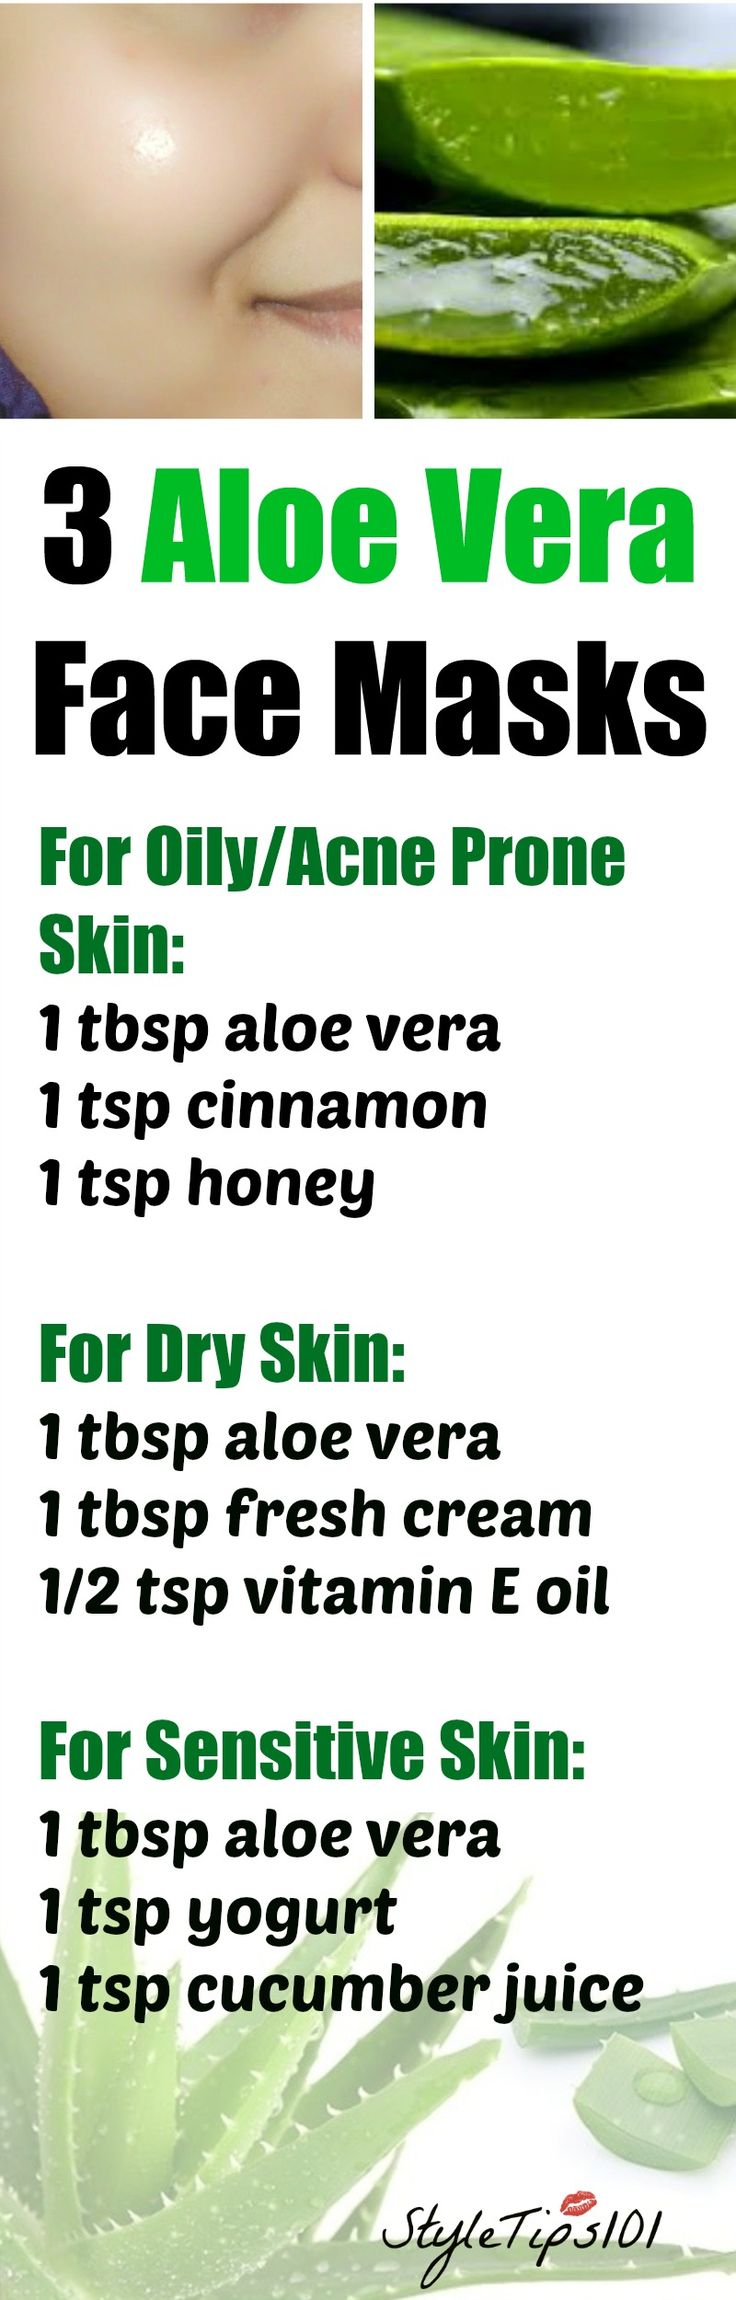 These 3 aloe vera face masks for every skin type work like magic! Whether you have oily, dry, or sensitive skin, aloe vera can fix all of that and more!